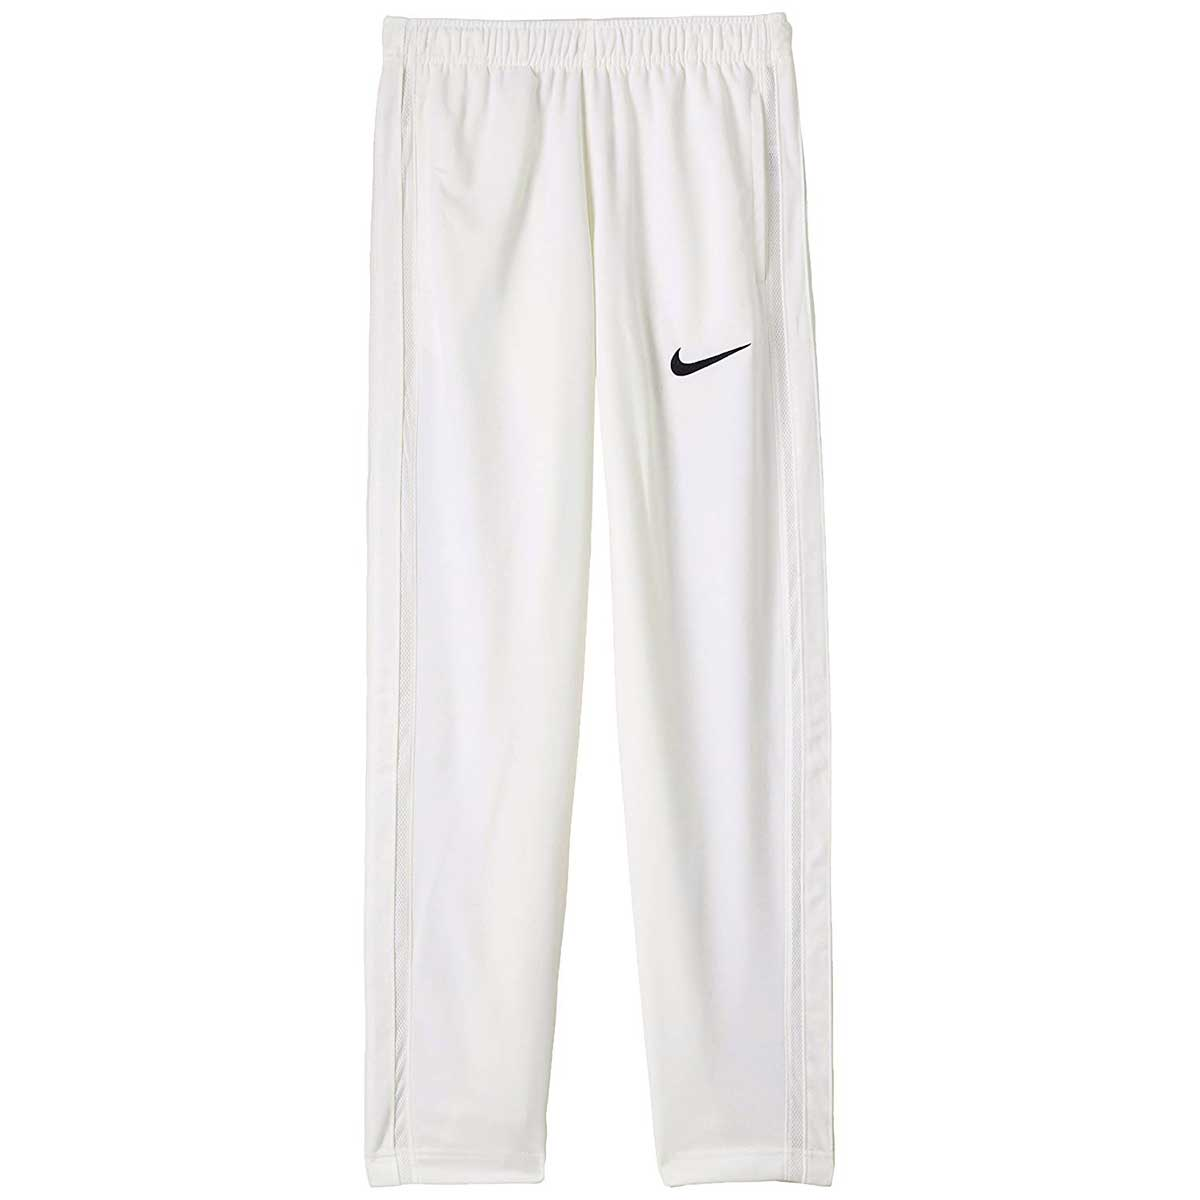 5d6f2ab8 Buy Nike Test Trousers Online India| Nike Cricket Pants Online Store